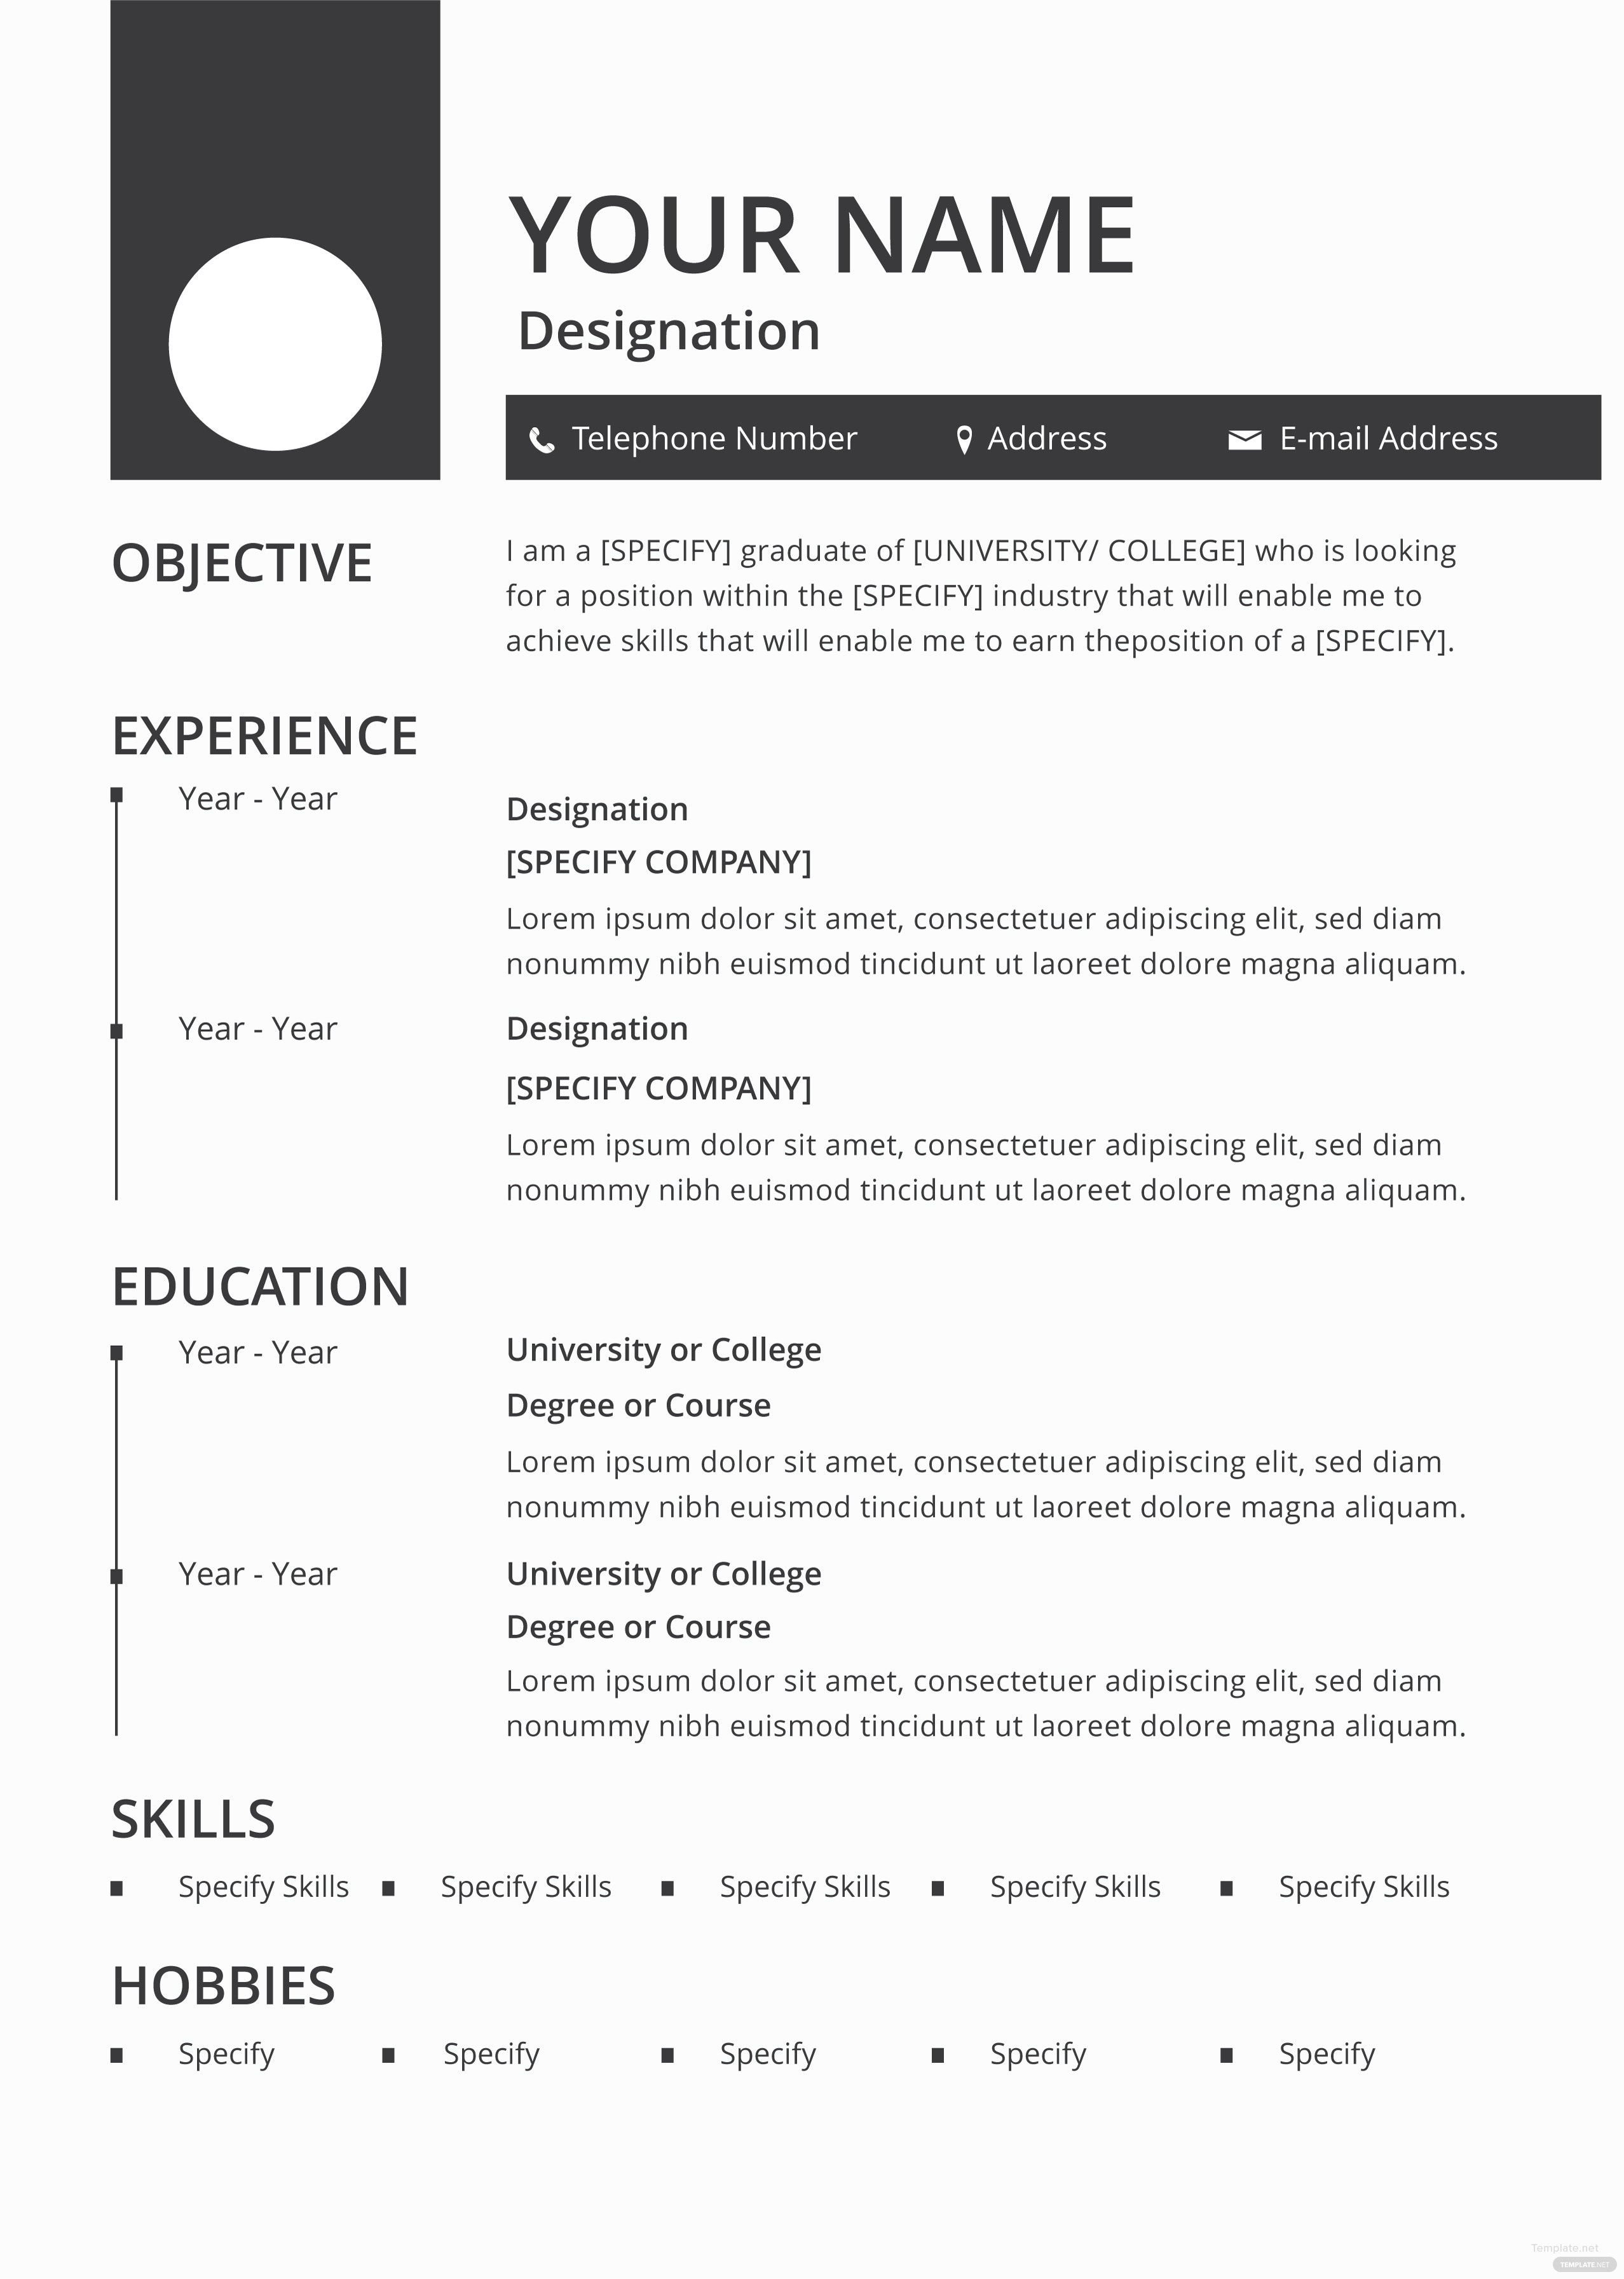 free blank resume and cv template in adobe photoshop  microsoft word  microsoft publisher  adobe